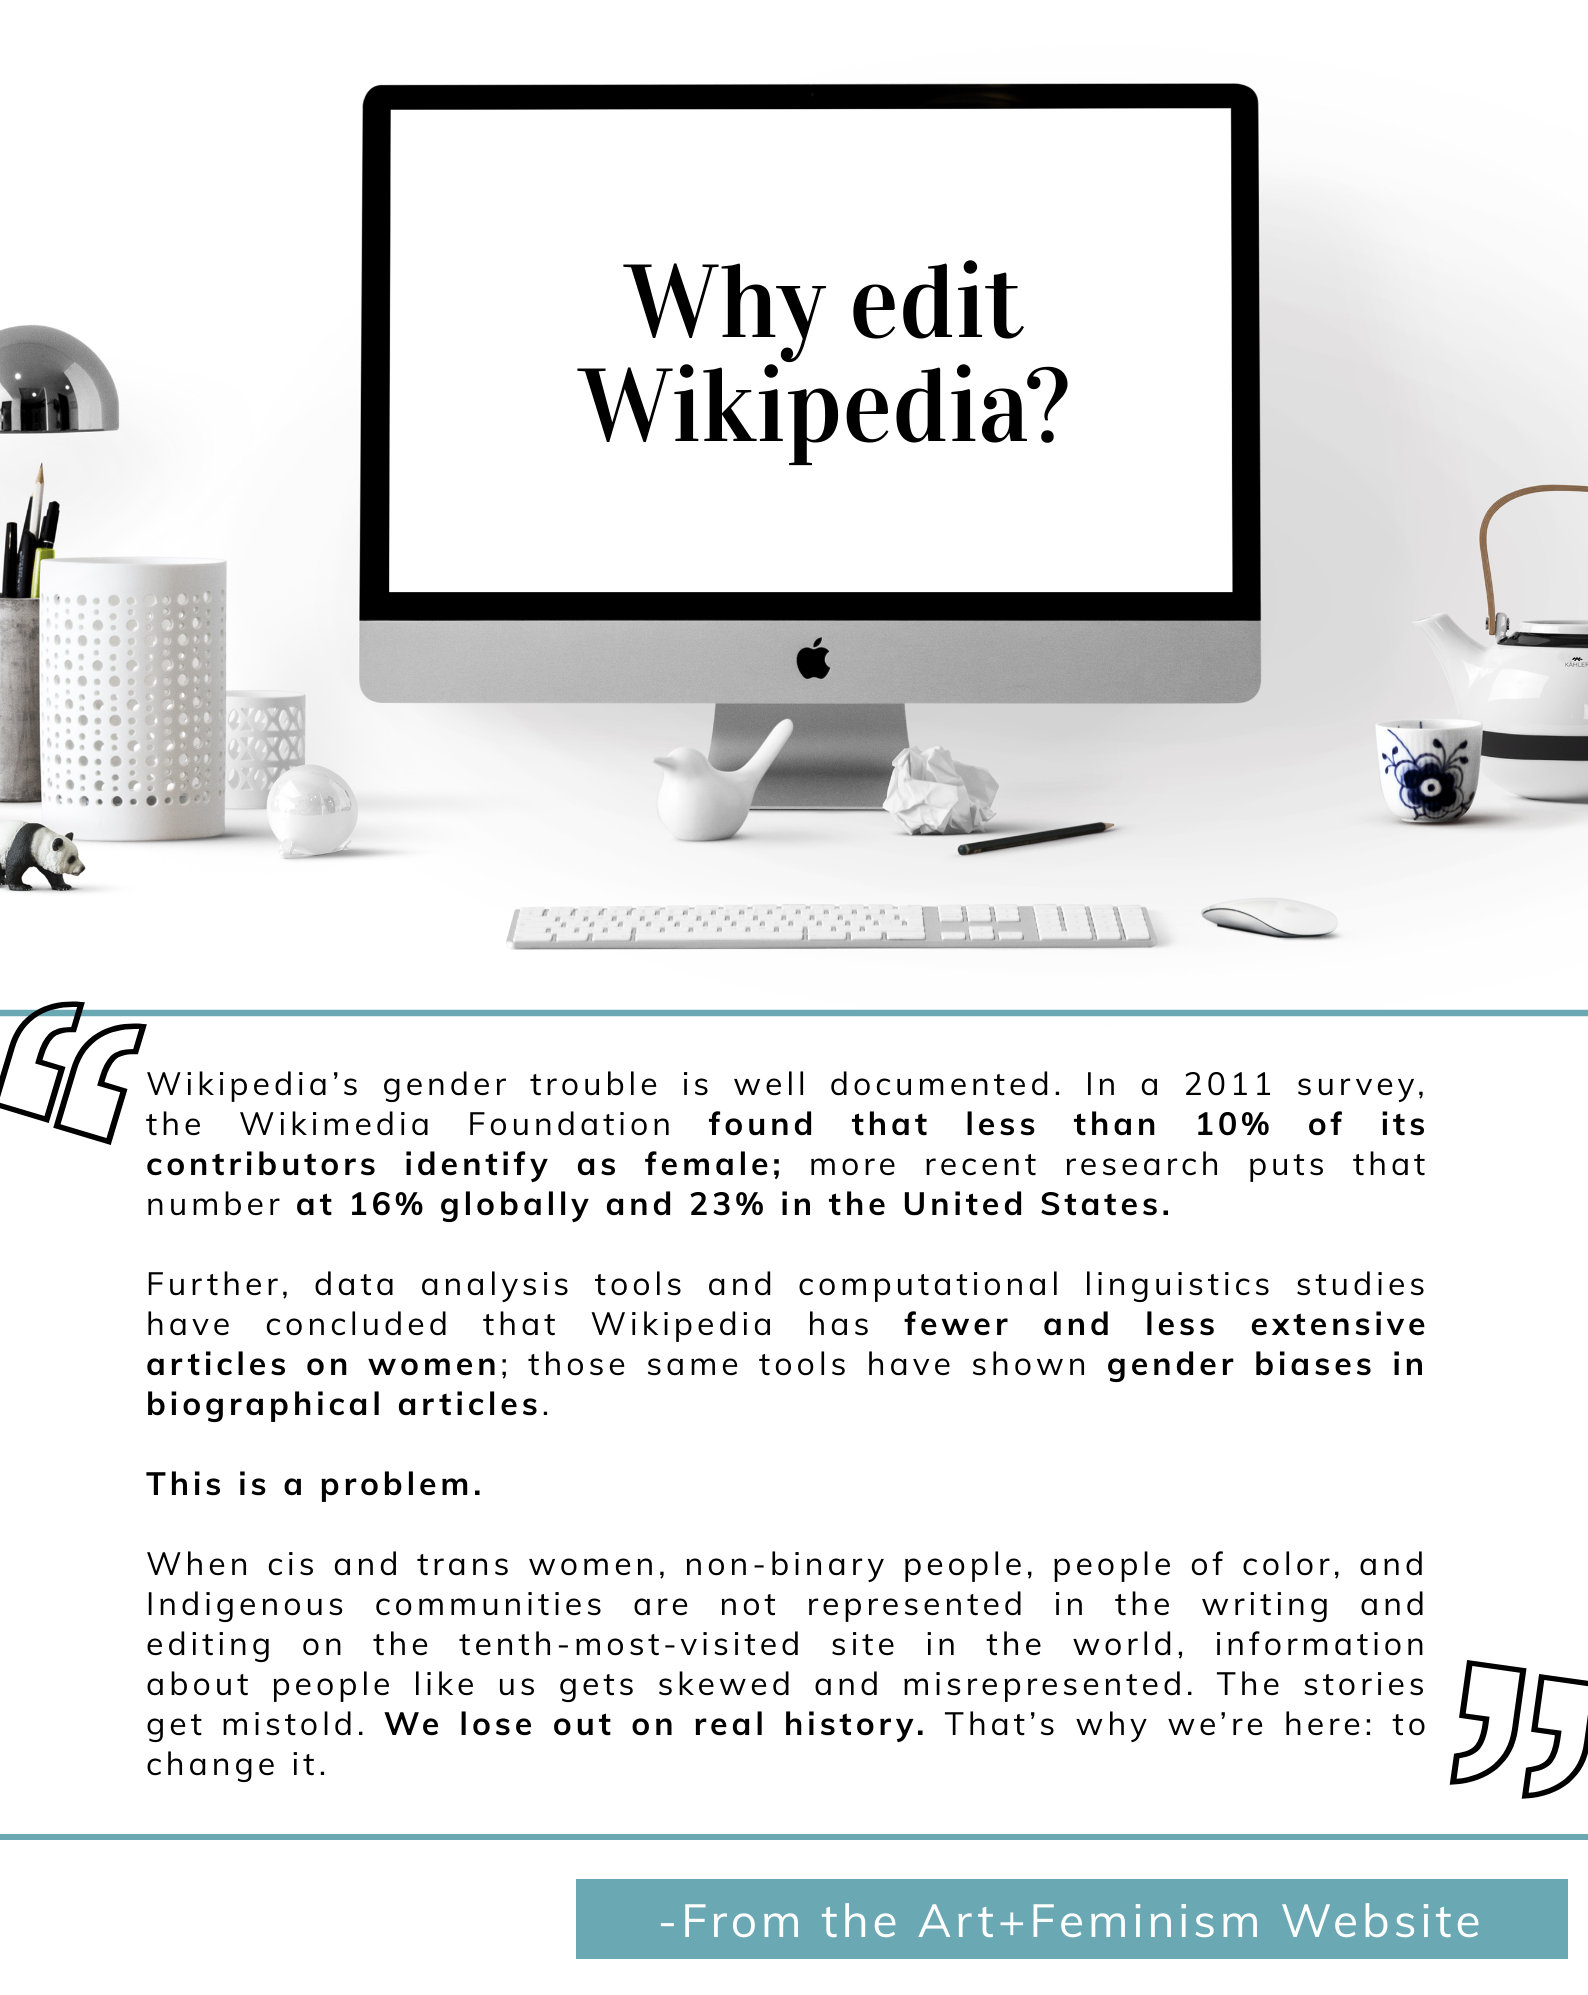 "Why Edit Wikipedia? Wikipedia's gender trouble is well documented. In a 2011 survey, the Wikimedia Foundation found that less than 10% of its contributors identify as female; more recent research puts that number at 16% globally and 23% in the United States.   Further, data analysis tools and computational linguistics studies have concluded that Wikipedia has fewer and less extensive articles on women; those same tools have shown gender biases in biographical articles.   This is a problem.   When cis and trans women, non-binary people, people of color, and Indigenous communities are not represented in the writing and editing on the tenth-most-visited site in the world, information about people like us gets skewed and misrepresented. The stories get mistold. We lose out on real history. That's why we're here: to change it."" From Art + Feminism Website"